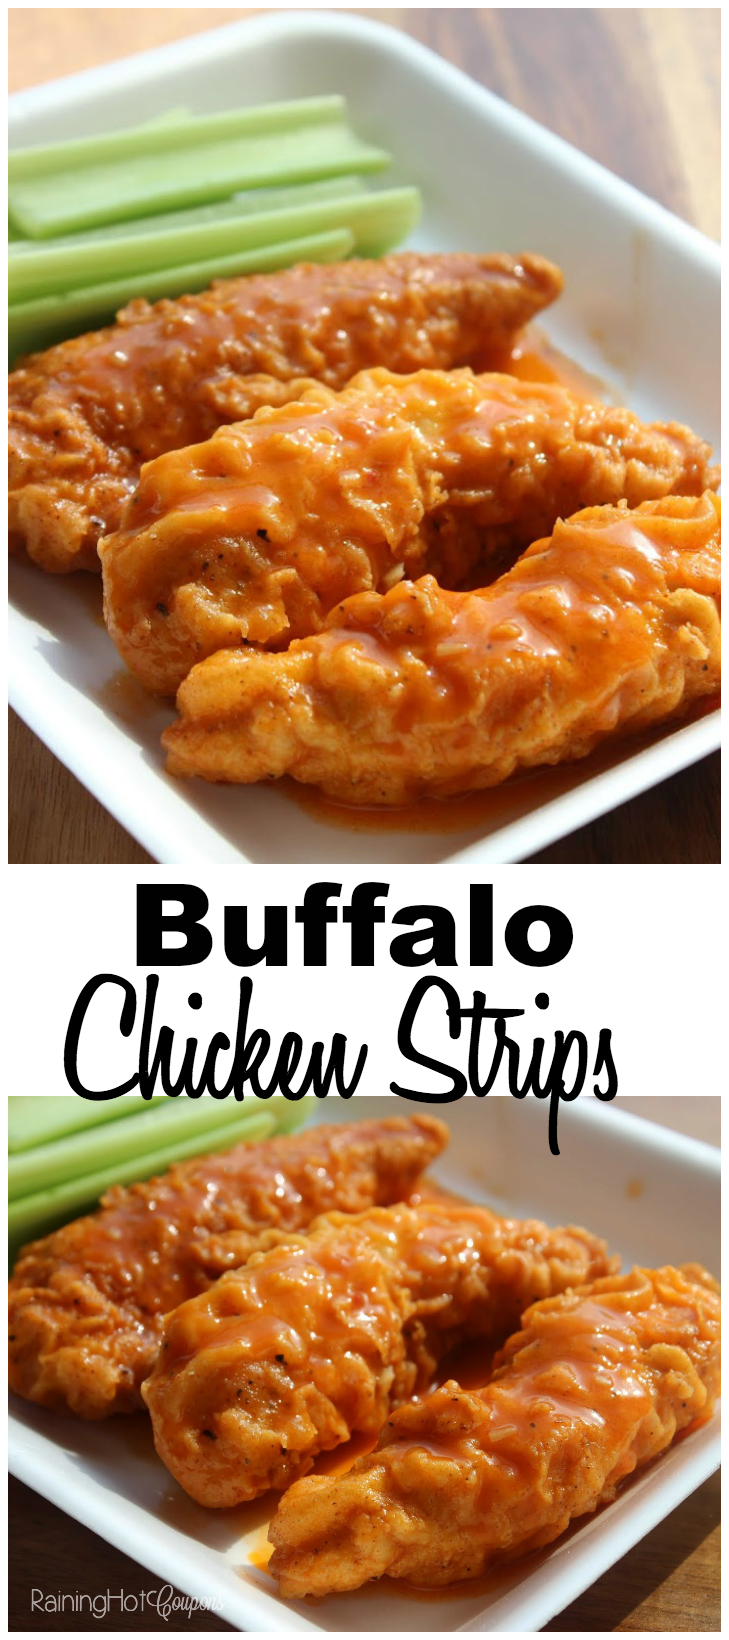 Buffalo Chicken Strips